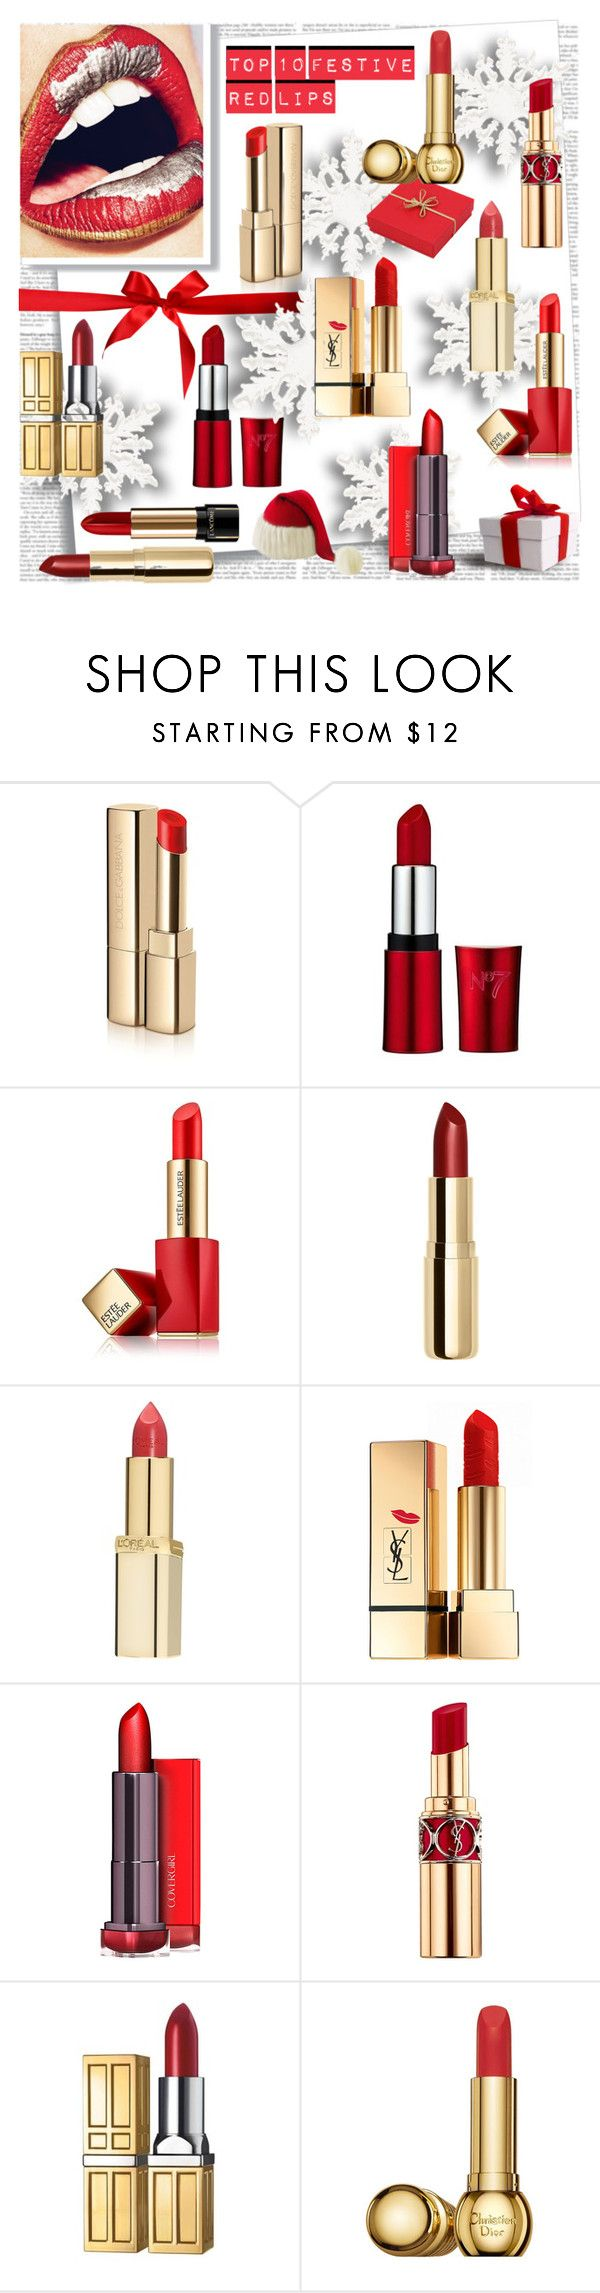 """Top 10 Festive Red Lipsticks"" by stylepersonal ❤ liked on Polyvore featuring beauty, Post-It, Dolce&Gabbana, Estée Lauder, H&M, L'Oréal Paris, Yves Saint Laurent, Elizabeth Arden, Christian Dior and Lancôme"